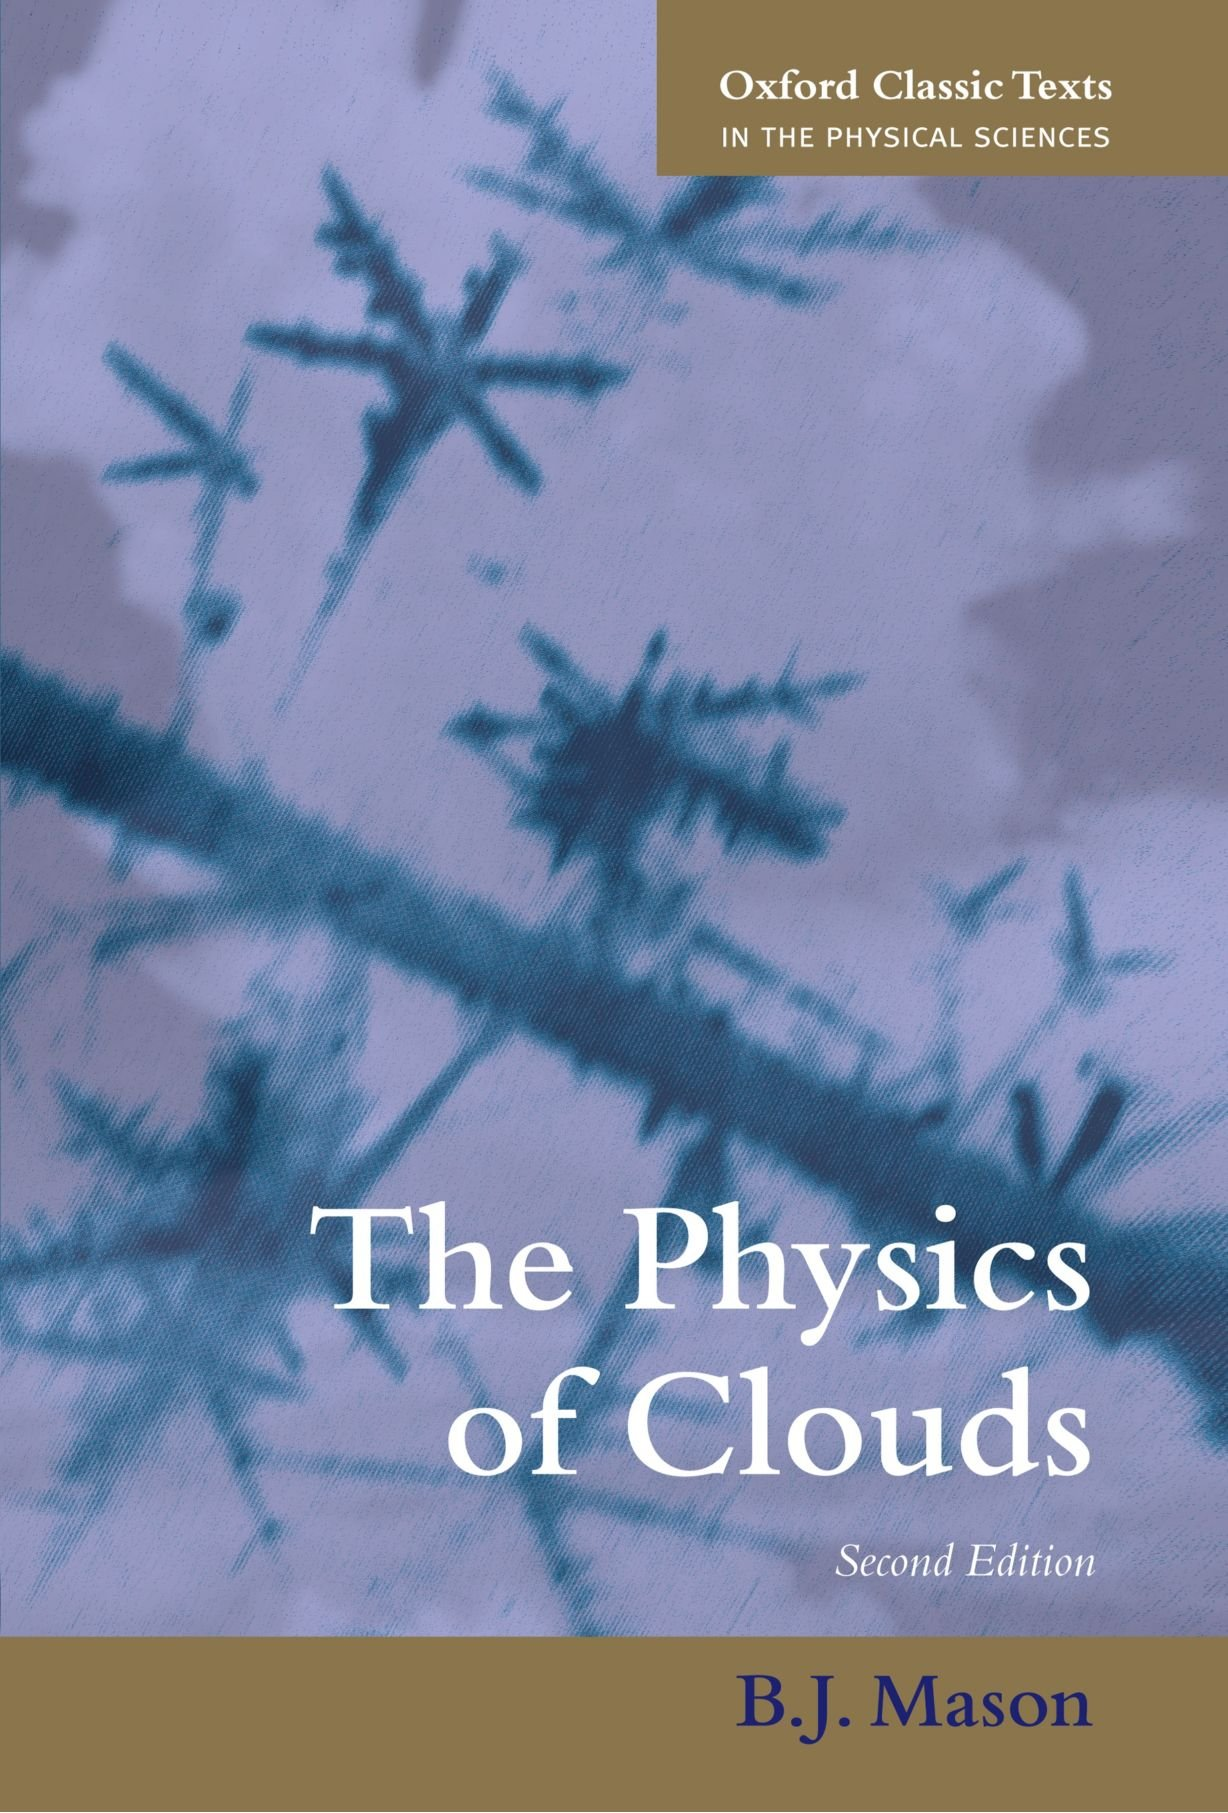 Image OfThe Physics Of Clouds